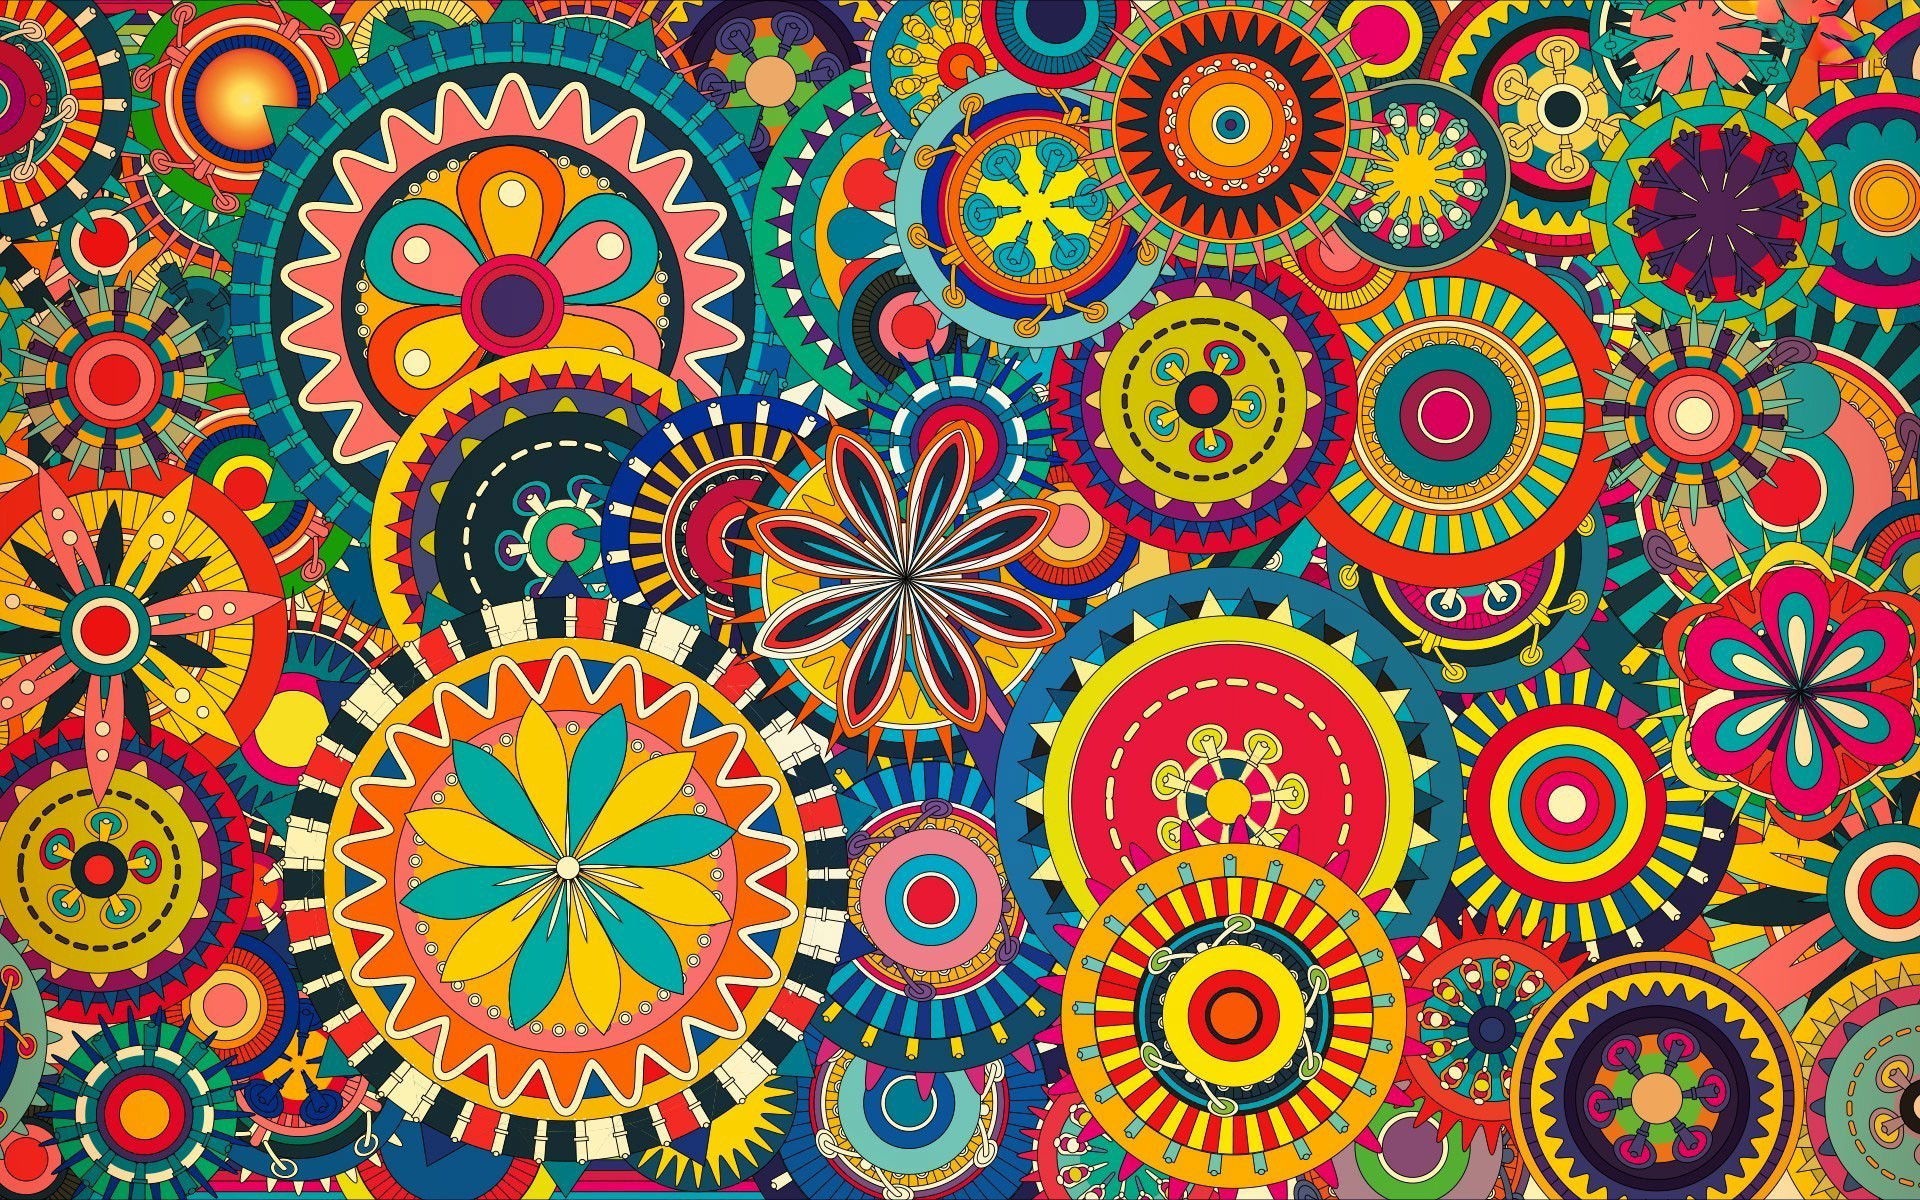 Colorful Desktop Background 74 Images